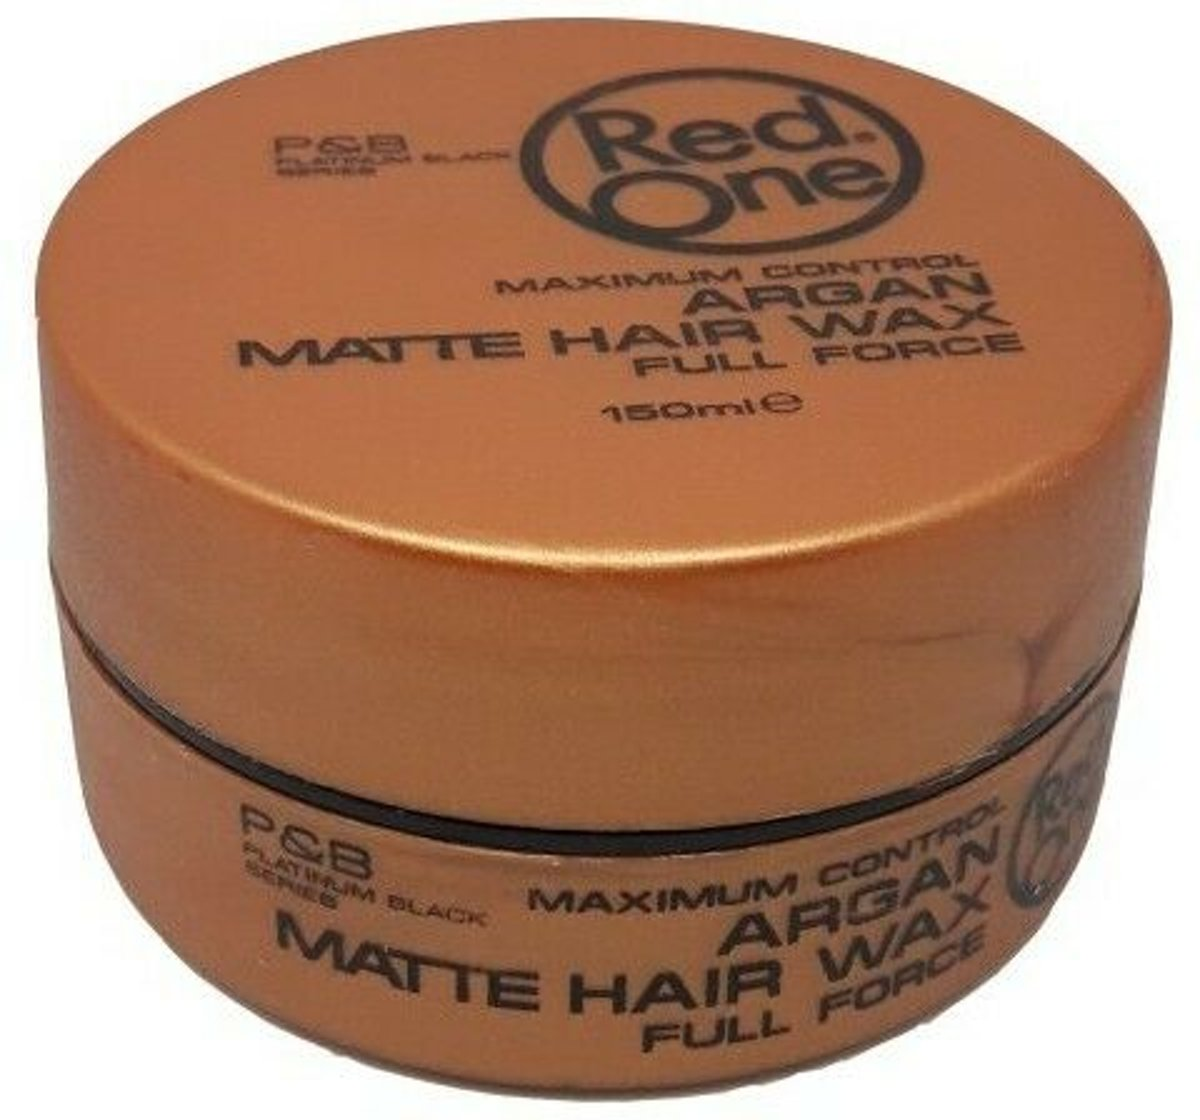 Red One Maximum Control Argan Matte Hair Wax 150ml